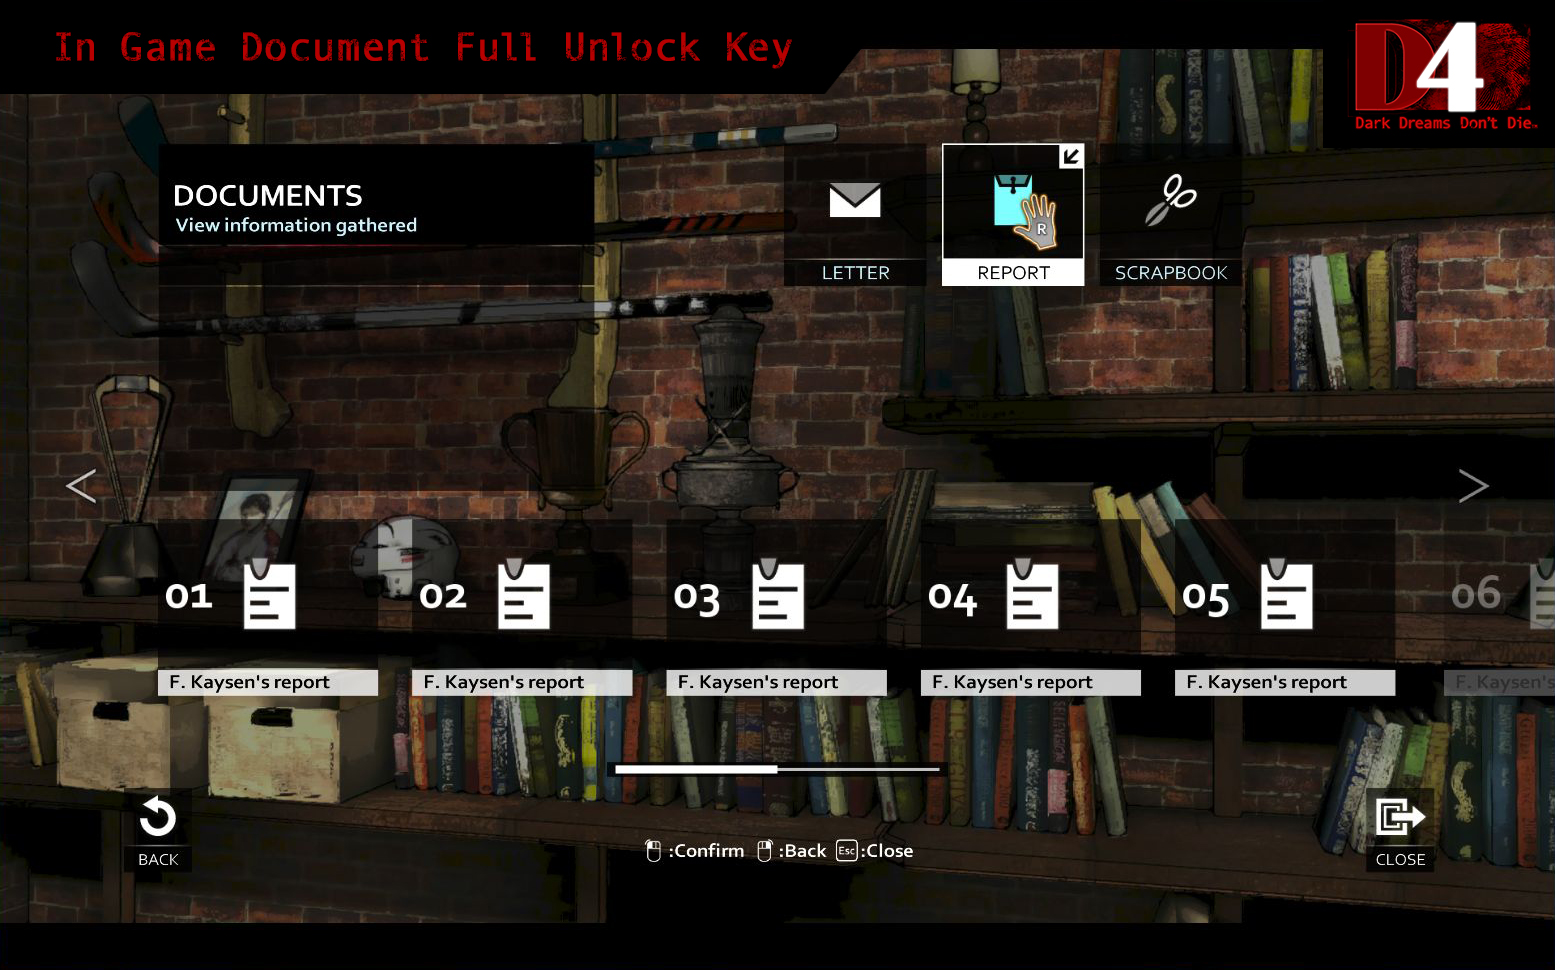 D4: In Game Document Full Unlock Key screenshot